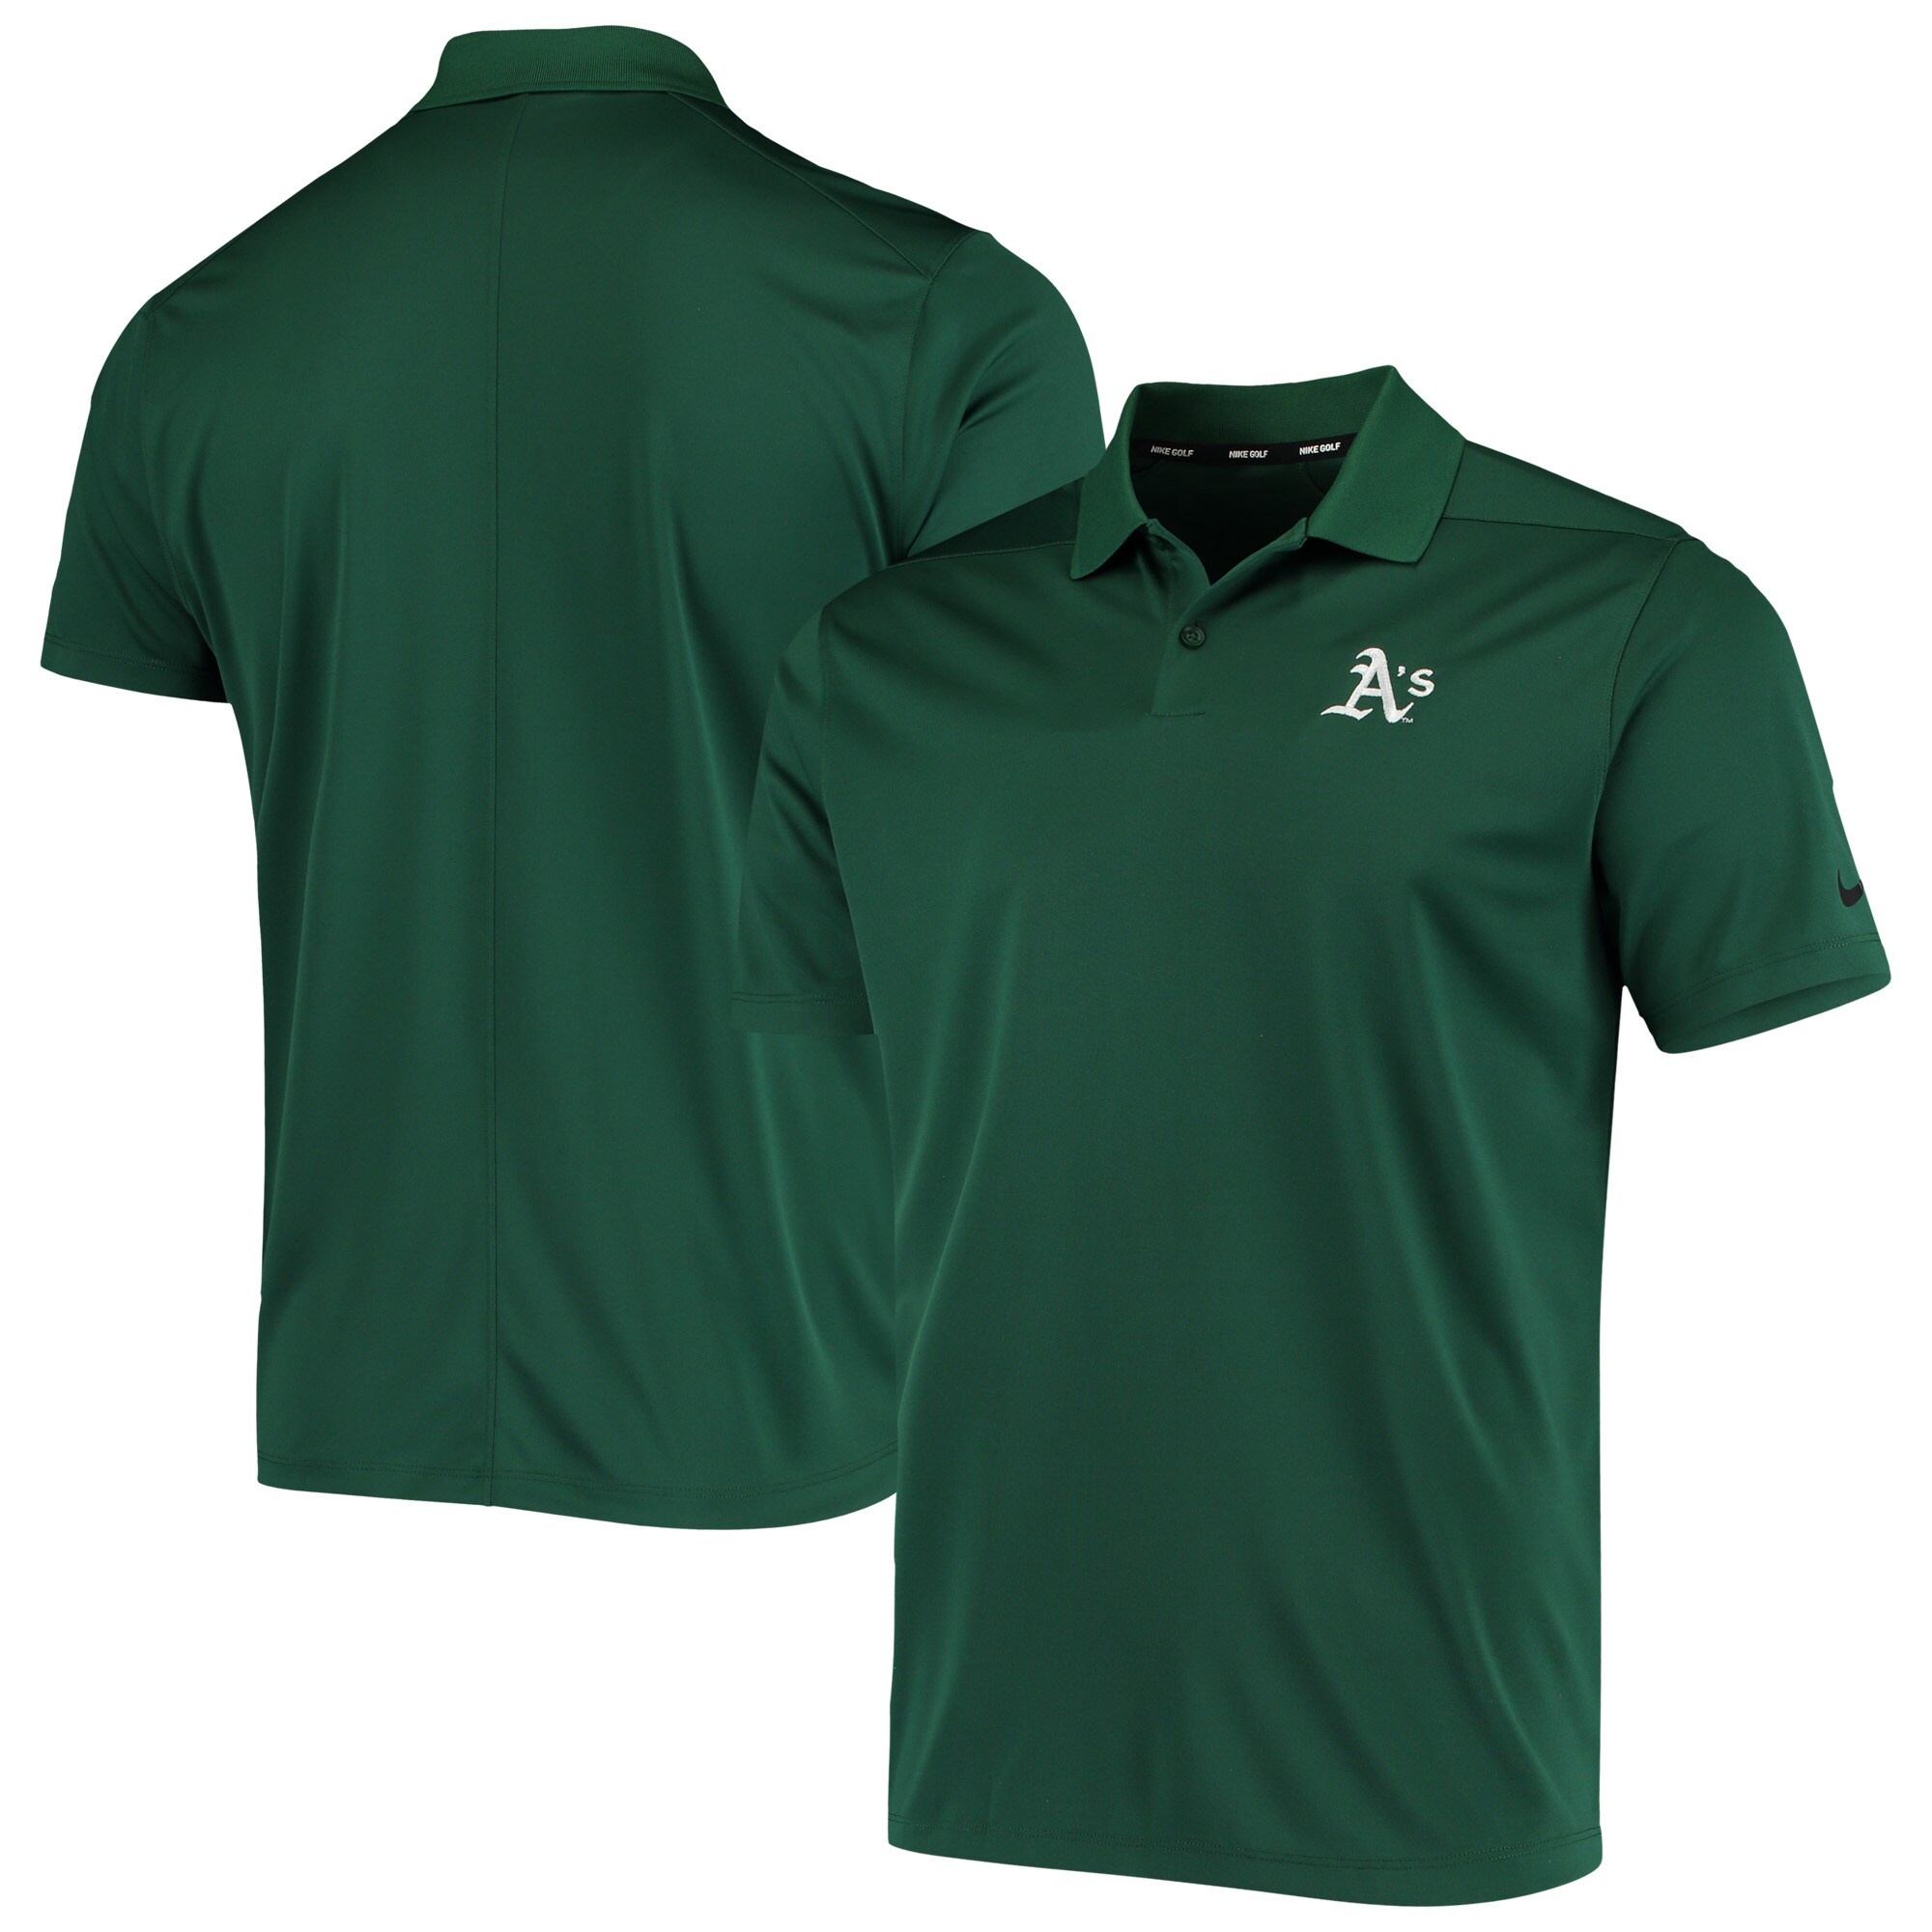 Oakland Athletics Nike Golf Solid Victory Performance Polo - Green